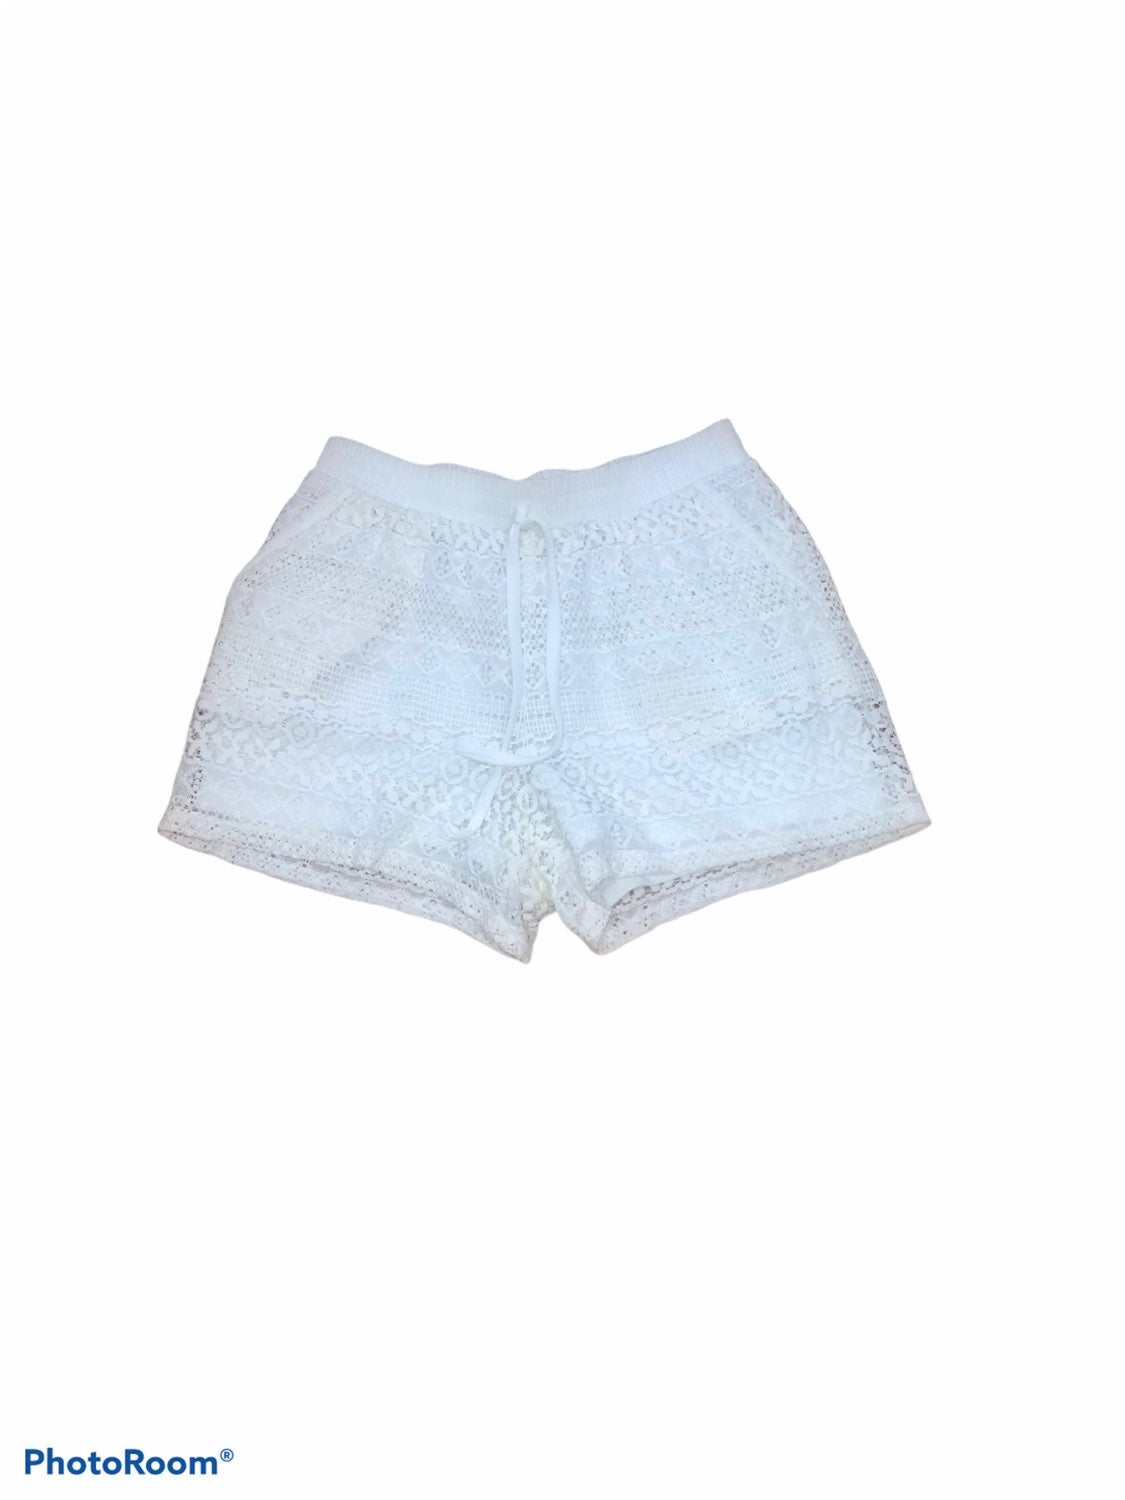 MAURICES White Lace Shorts S